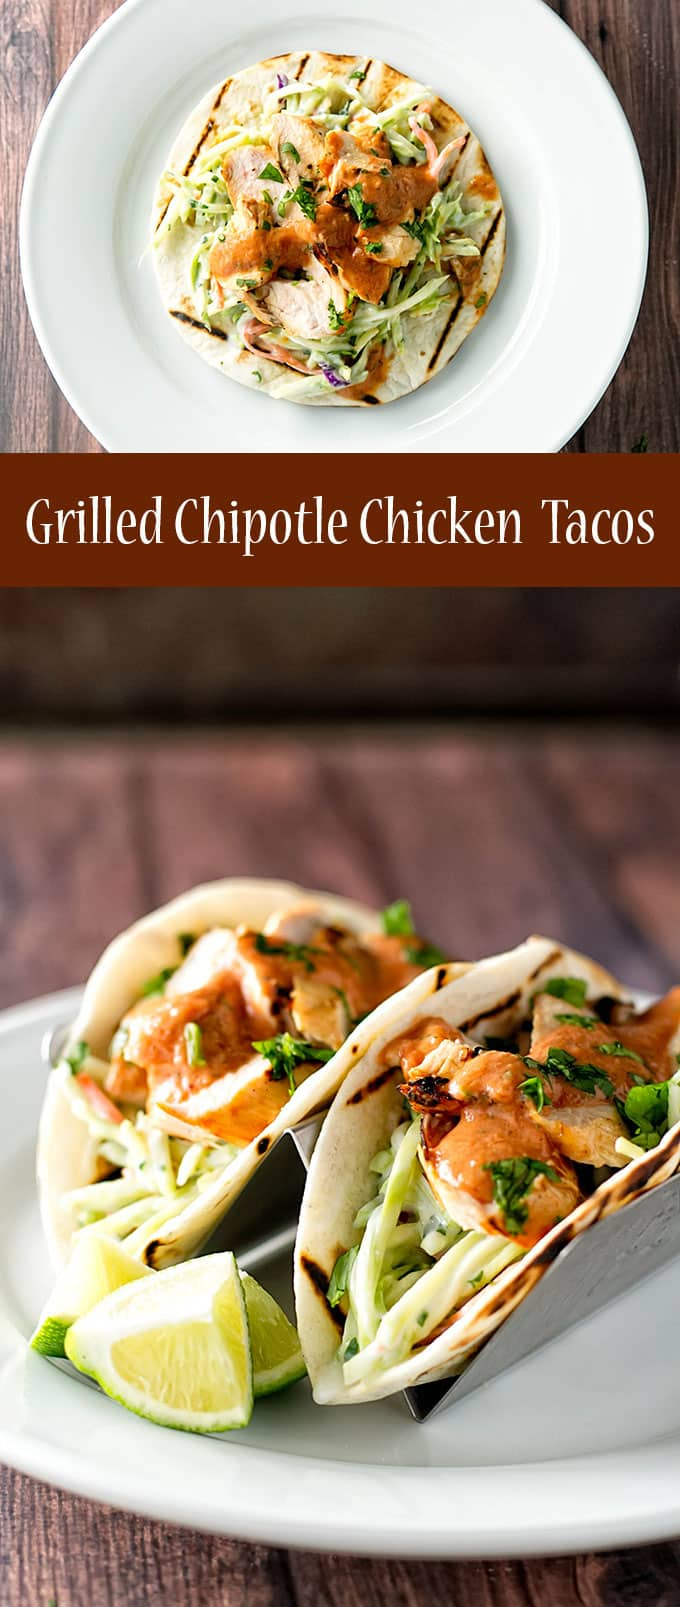 Grilled chipotle chicken tacos with a cool and creamy broccoli slaw | girlgonegourmet.com